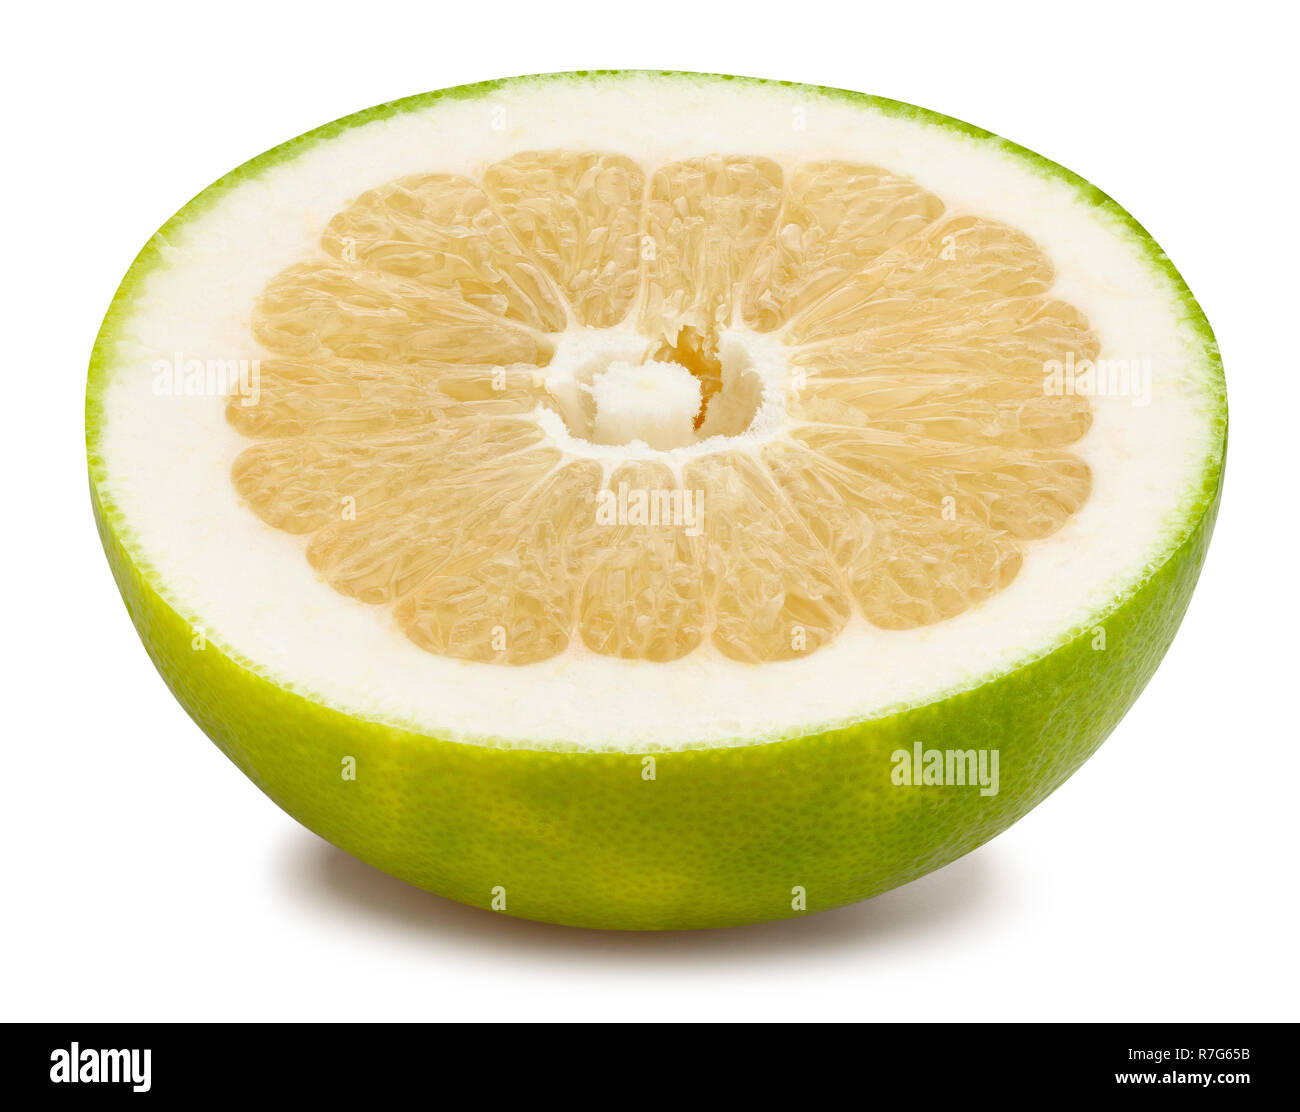 sliced sweety path isolated - Stock Image